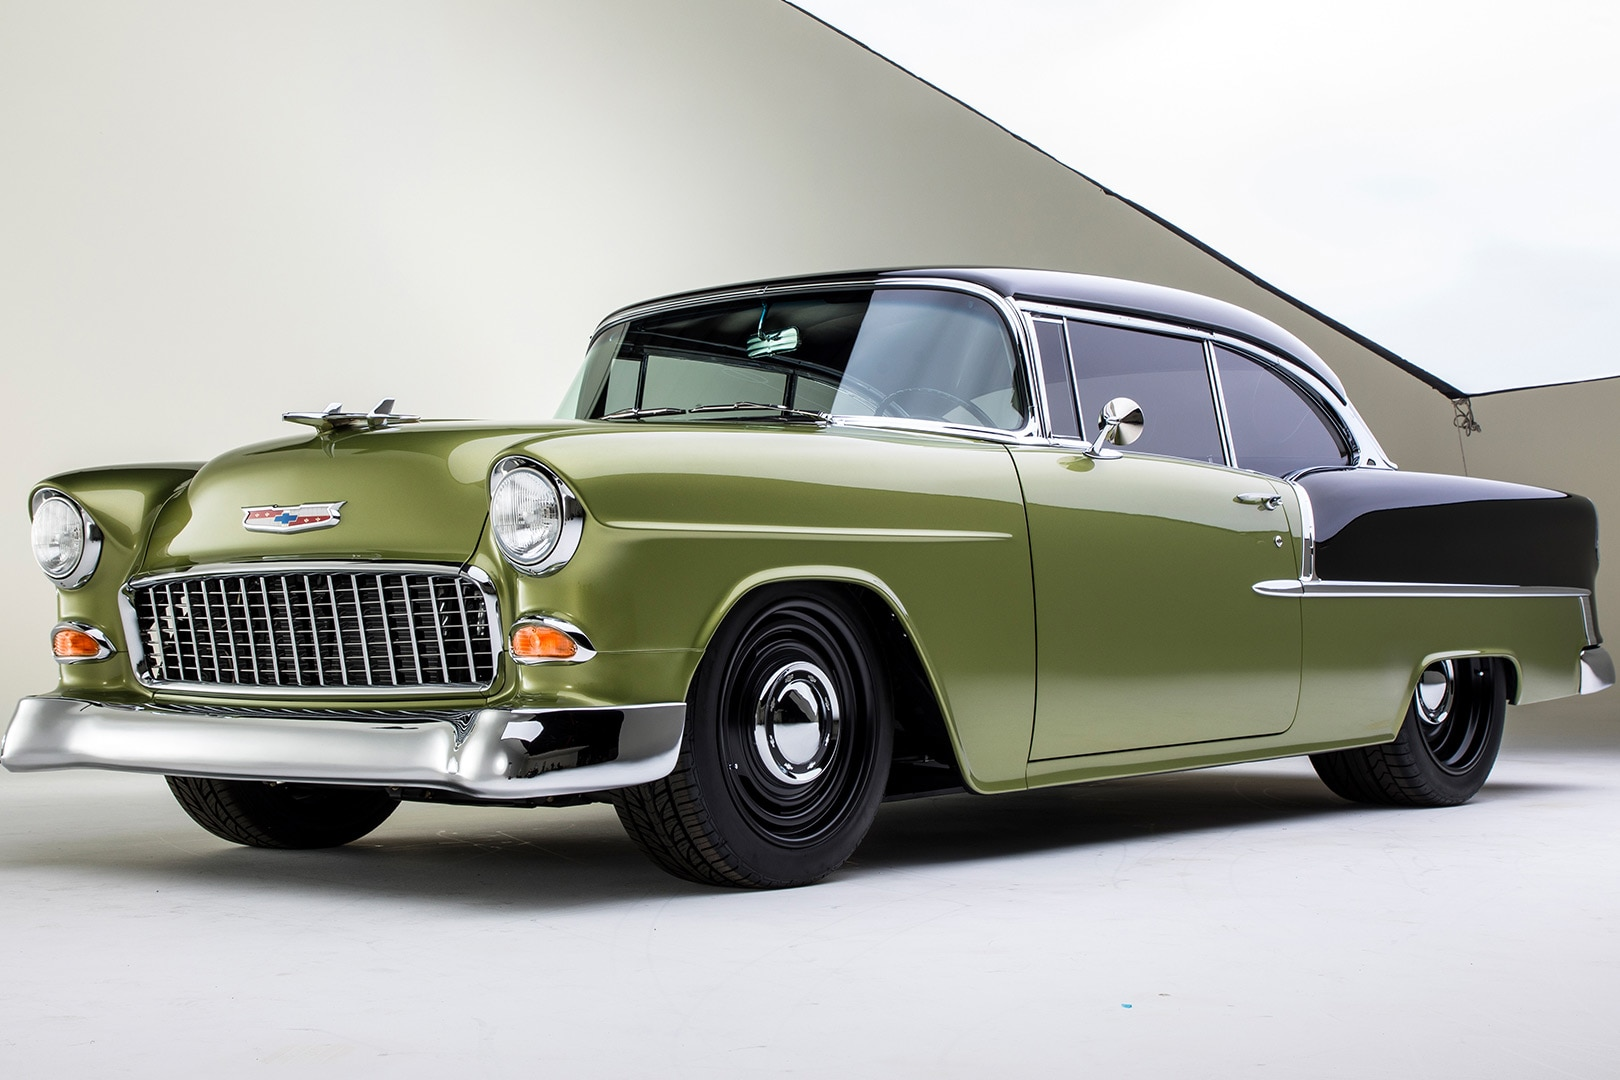 WATCH: Ten Reasons Why This '55 Chevy Cost $500,000 to ...